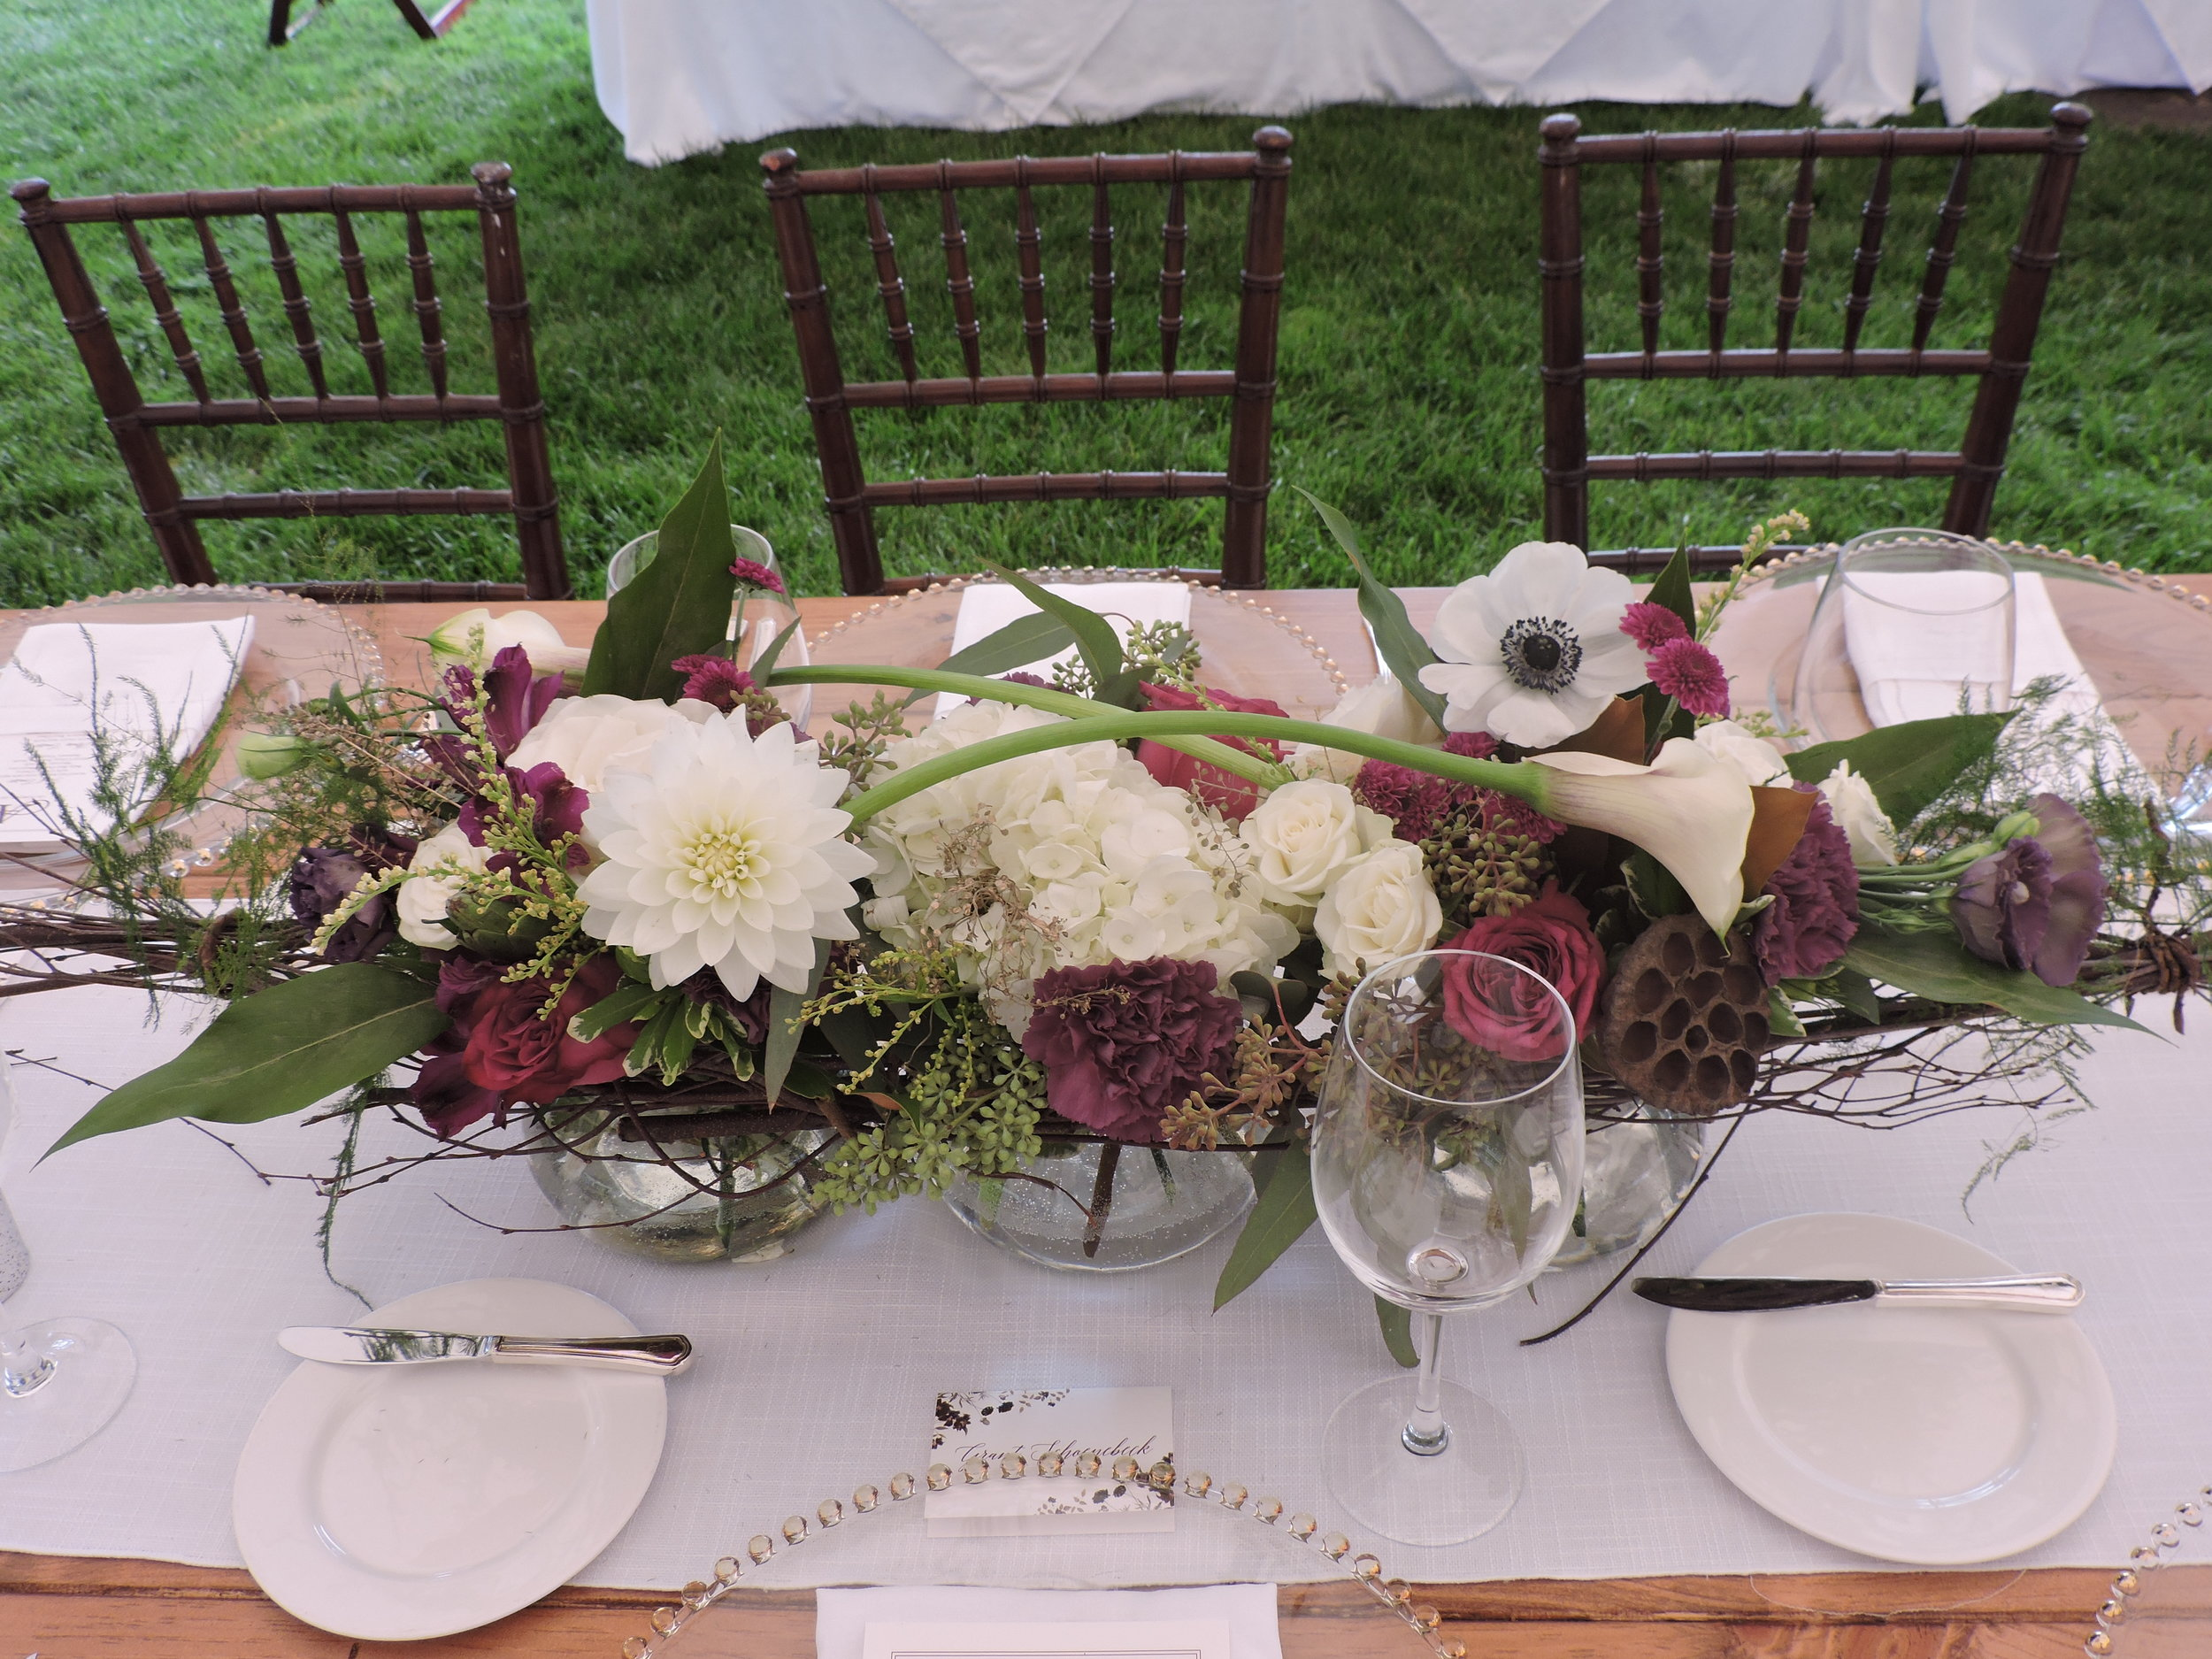 Dahlias, calla lilies and anemones are among the flowers bringing elegance to this upscale farm table.